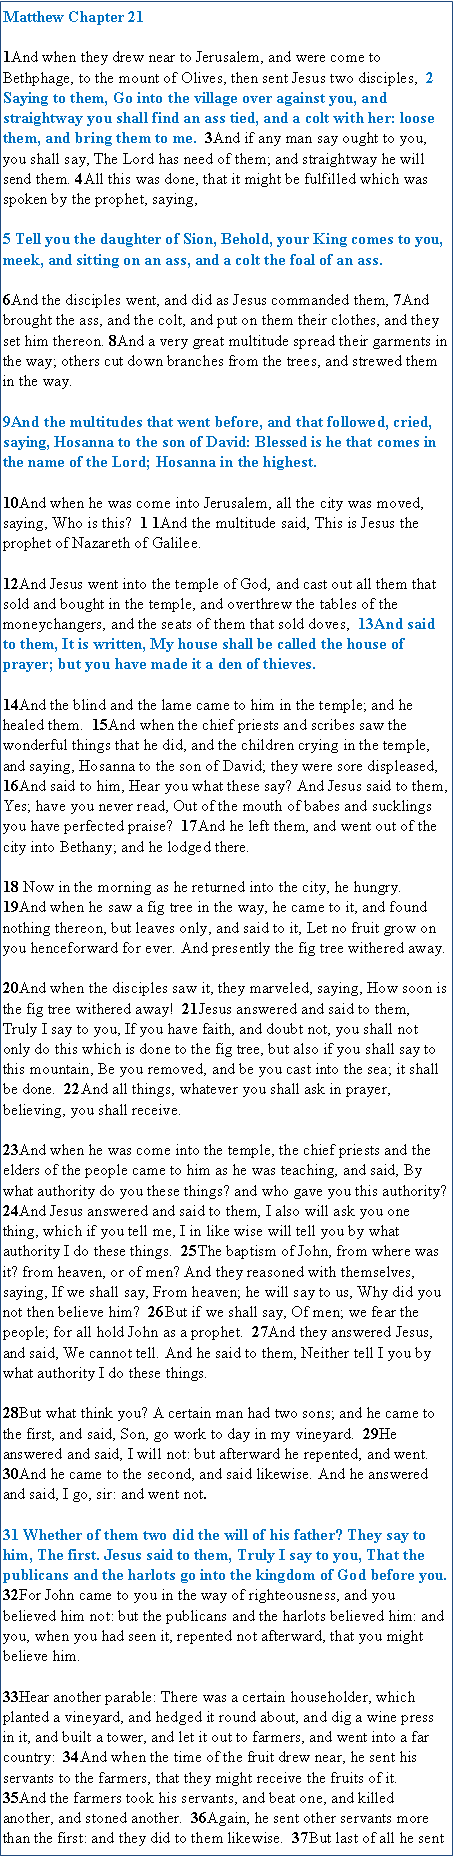 Text Box: Matthew Chapter 21 [NKJV]